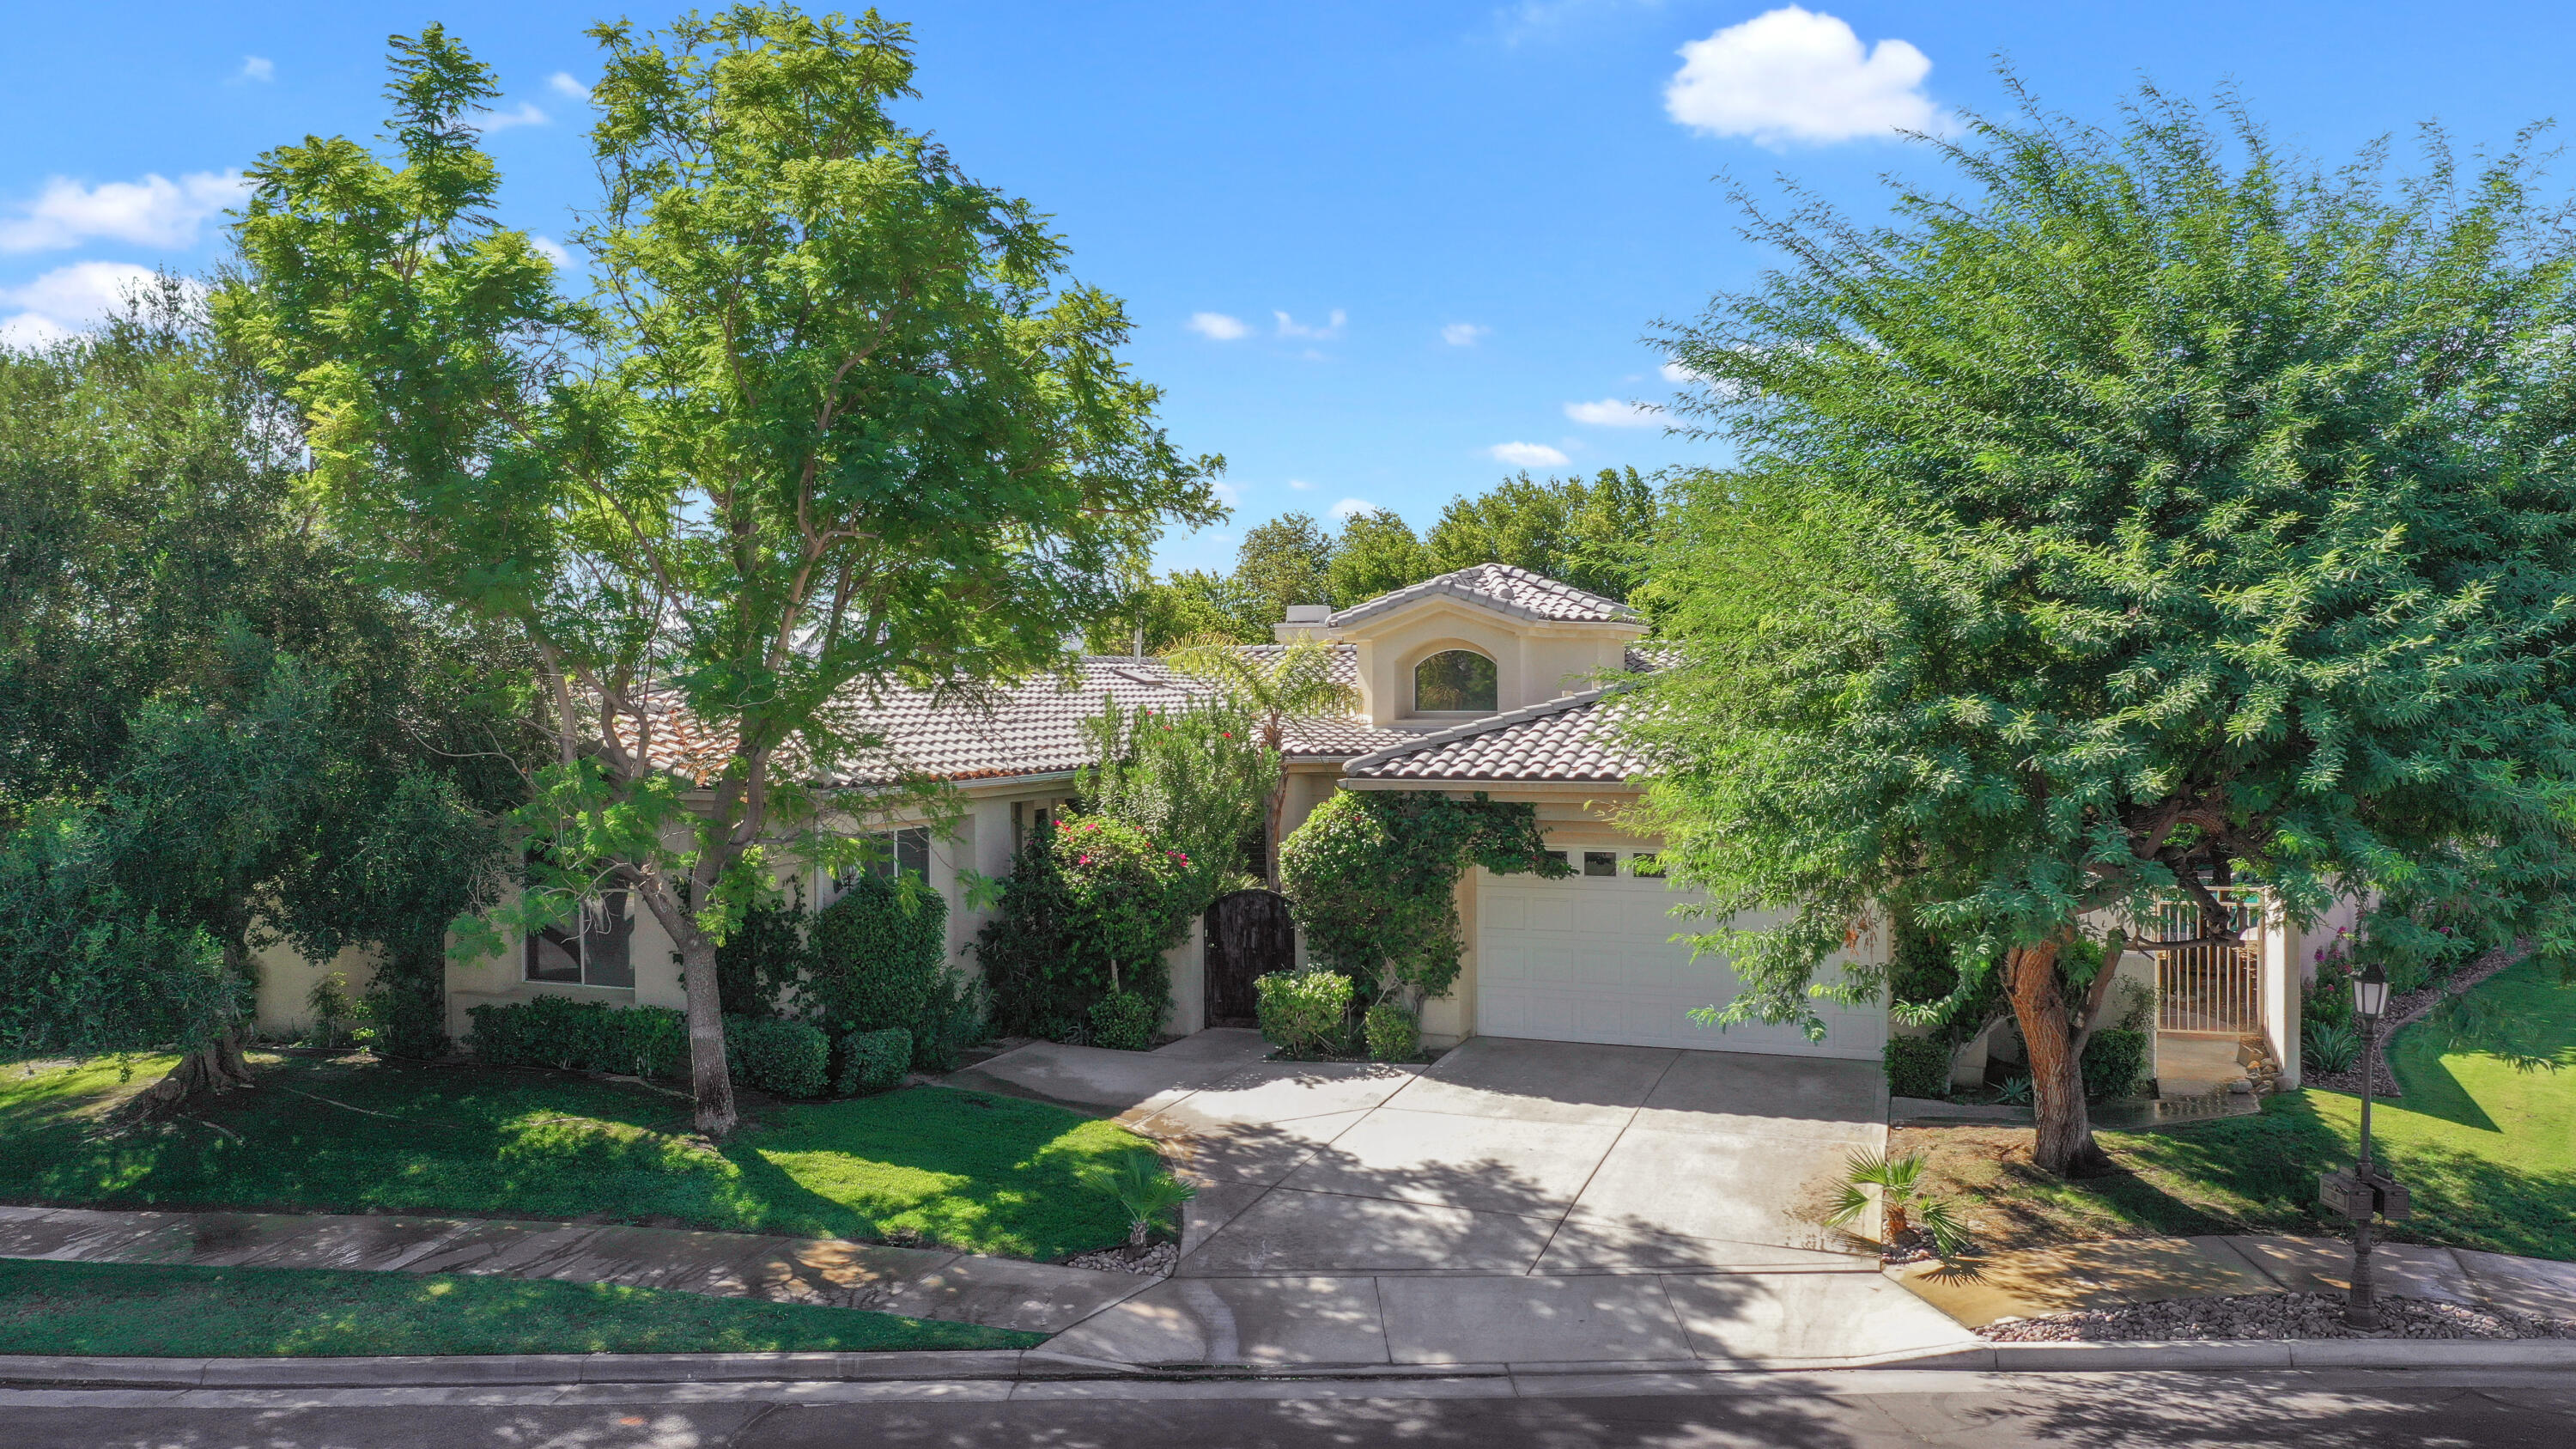 This spacious 5 bedroom/4 bath home is in the prestigious gated community of Victoria Falls.  Nestled deep in the community, it is tucked away at the end of a cul-de-sac.  This popular Duchess model is an open floor plan offering a large family room with fireplace, custom built entertainment center and sliding doors open to the back yard, and it opens to a gourmet white-cabinet kitchen with granite counter tops, a breakfast nook and a breakfast bar. The separate large living and dining area offers multiple entertainment areas  and features French doors. This light and bright home features high-end shutters throughout the entire house.  The oversized master suite includes a master bath with a soaking tub, shower and large walk-in closet.  The main house features 3 more bedrooms and 2 more baths. The attached casita offers an additional bedroom and its own private full bath. The south-facing back yard includes a sparkling pool and spa, back patio for entertaining, and a built-in BBQ, offering multiple entertaining areas for family and friends.  For the sports aficionado , the home is just a short walking distance to the tennis & basketball courts. The house has been freshly painted, has a new HVAC system and a new pool heater.  Victoria Falls is conveniently located, just 5 minutes from El Paseo, the valley's own Rodeo Drive, 5 minutes away from the entertaining/dining venue of The River, and 10 minutes from the Palm Springs airport.